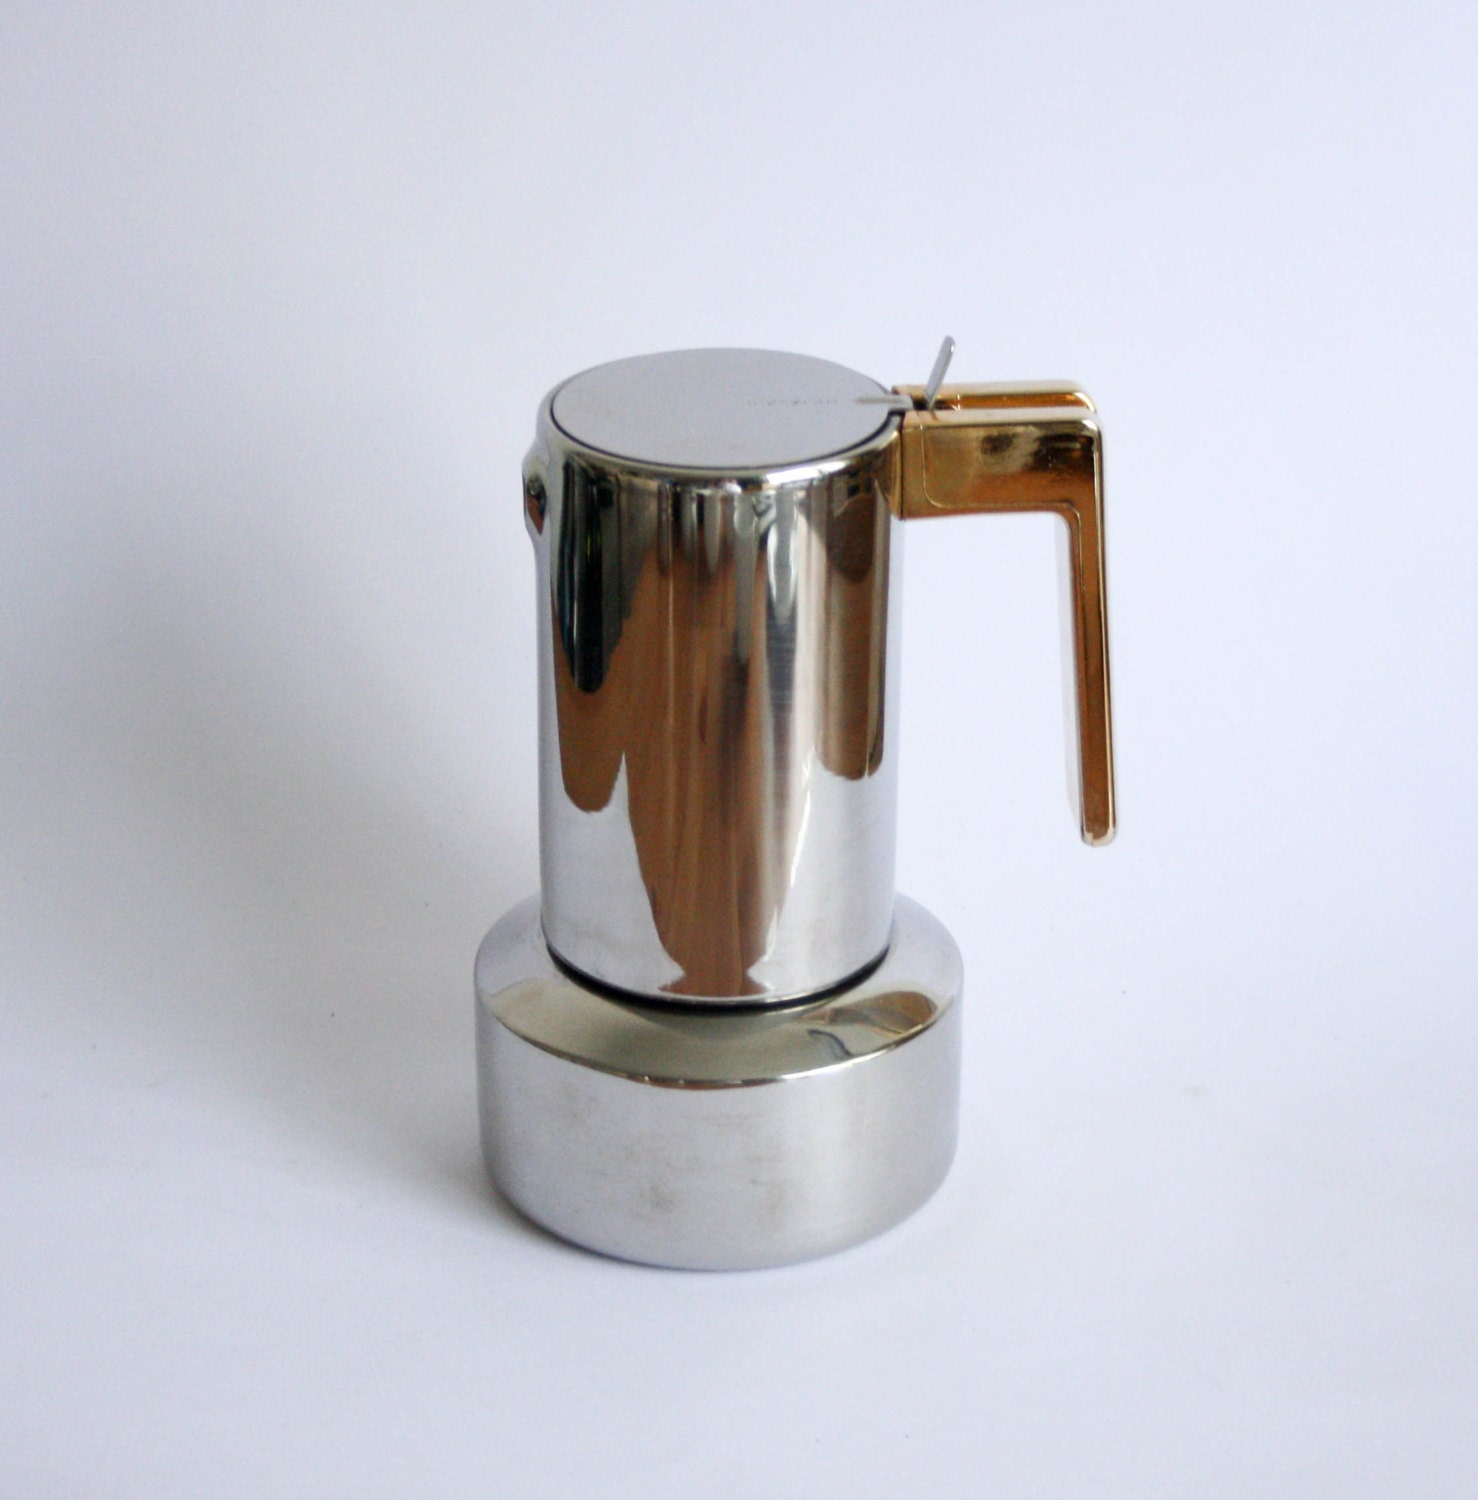 Antique Italian Coffee Maker : RESERVED Vintage Inoxpran Coffee Maker Made in Italy